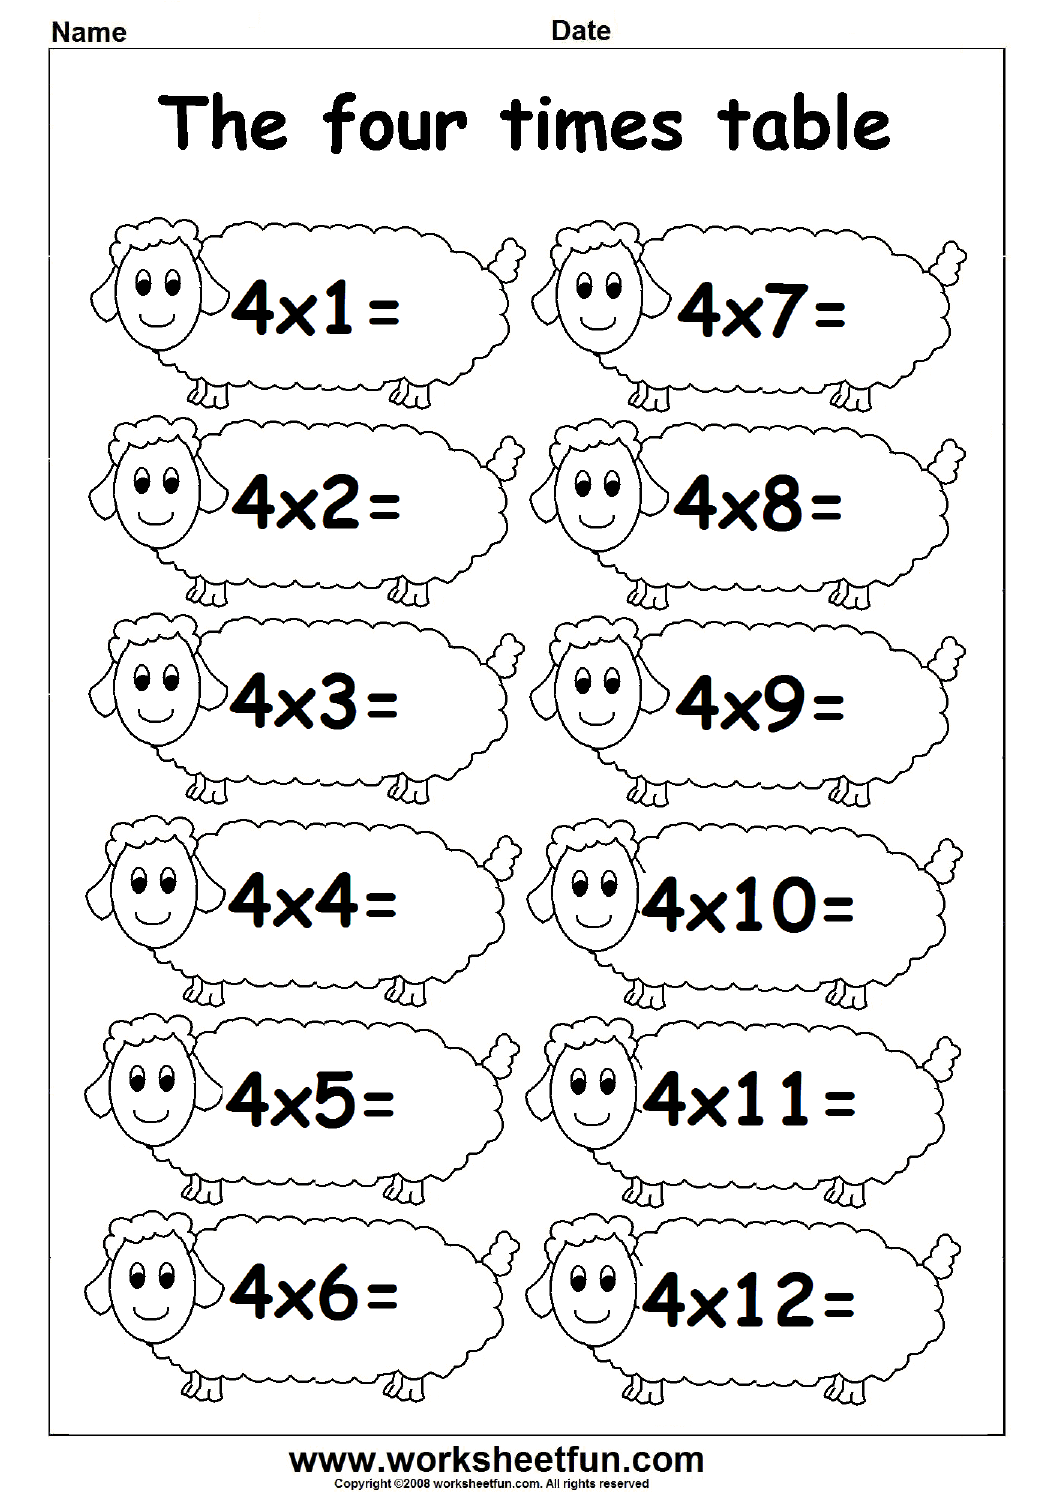 Worksheet Printable Times Table Worksheets times table 4 free printable worksheets worksheetfun multiplication tables 2 3 three worksheets